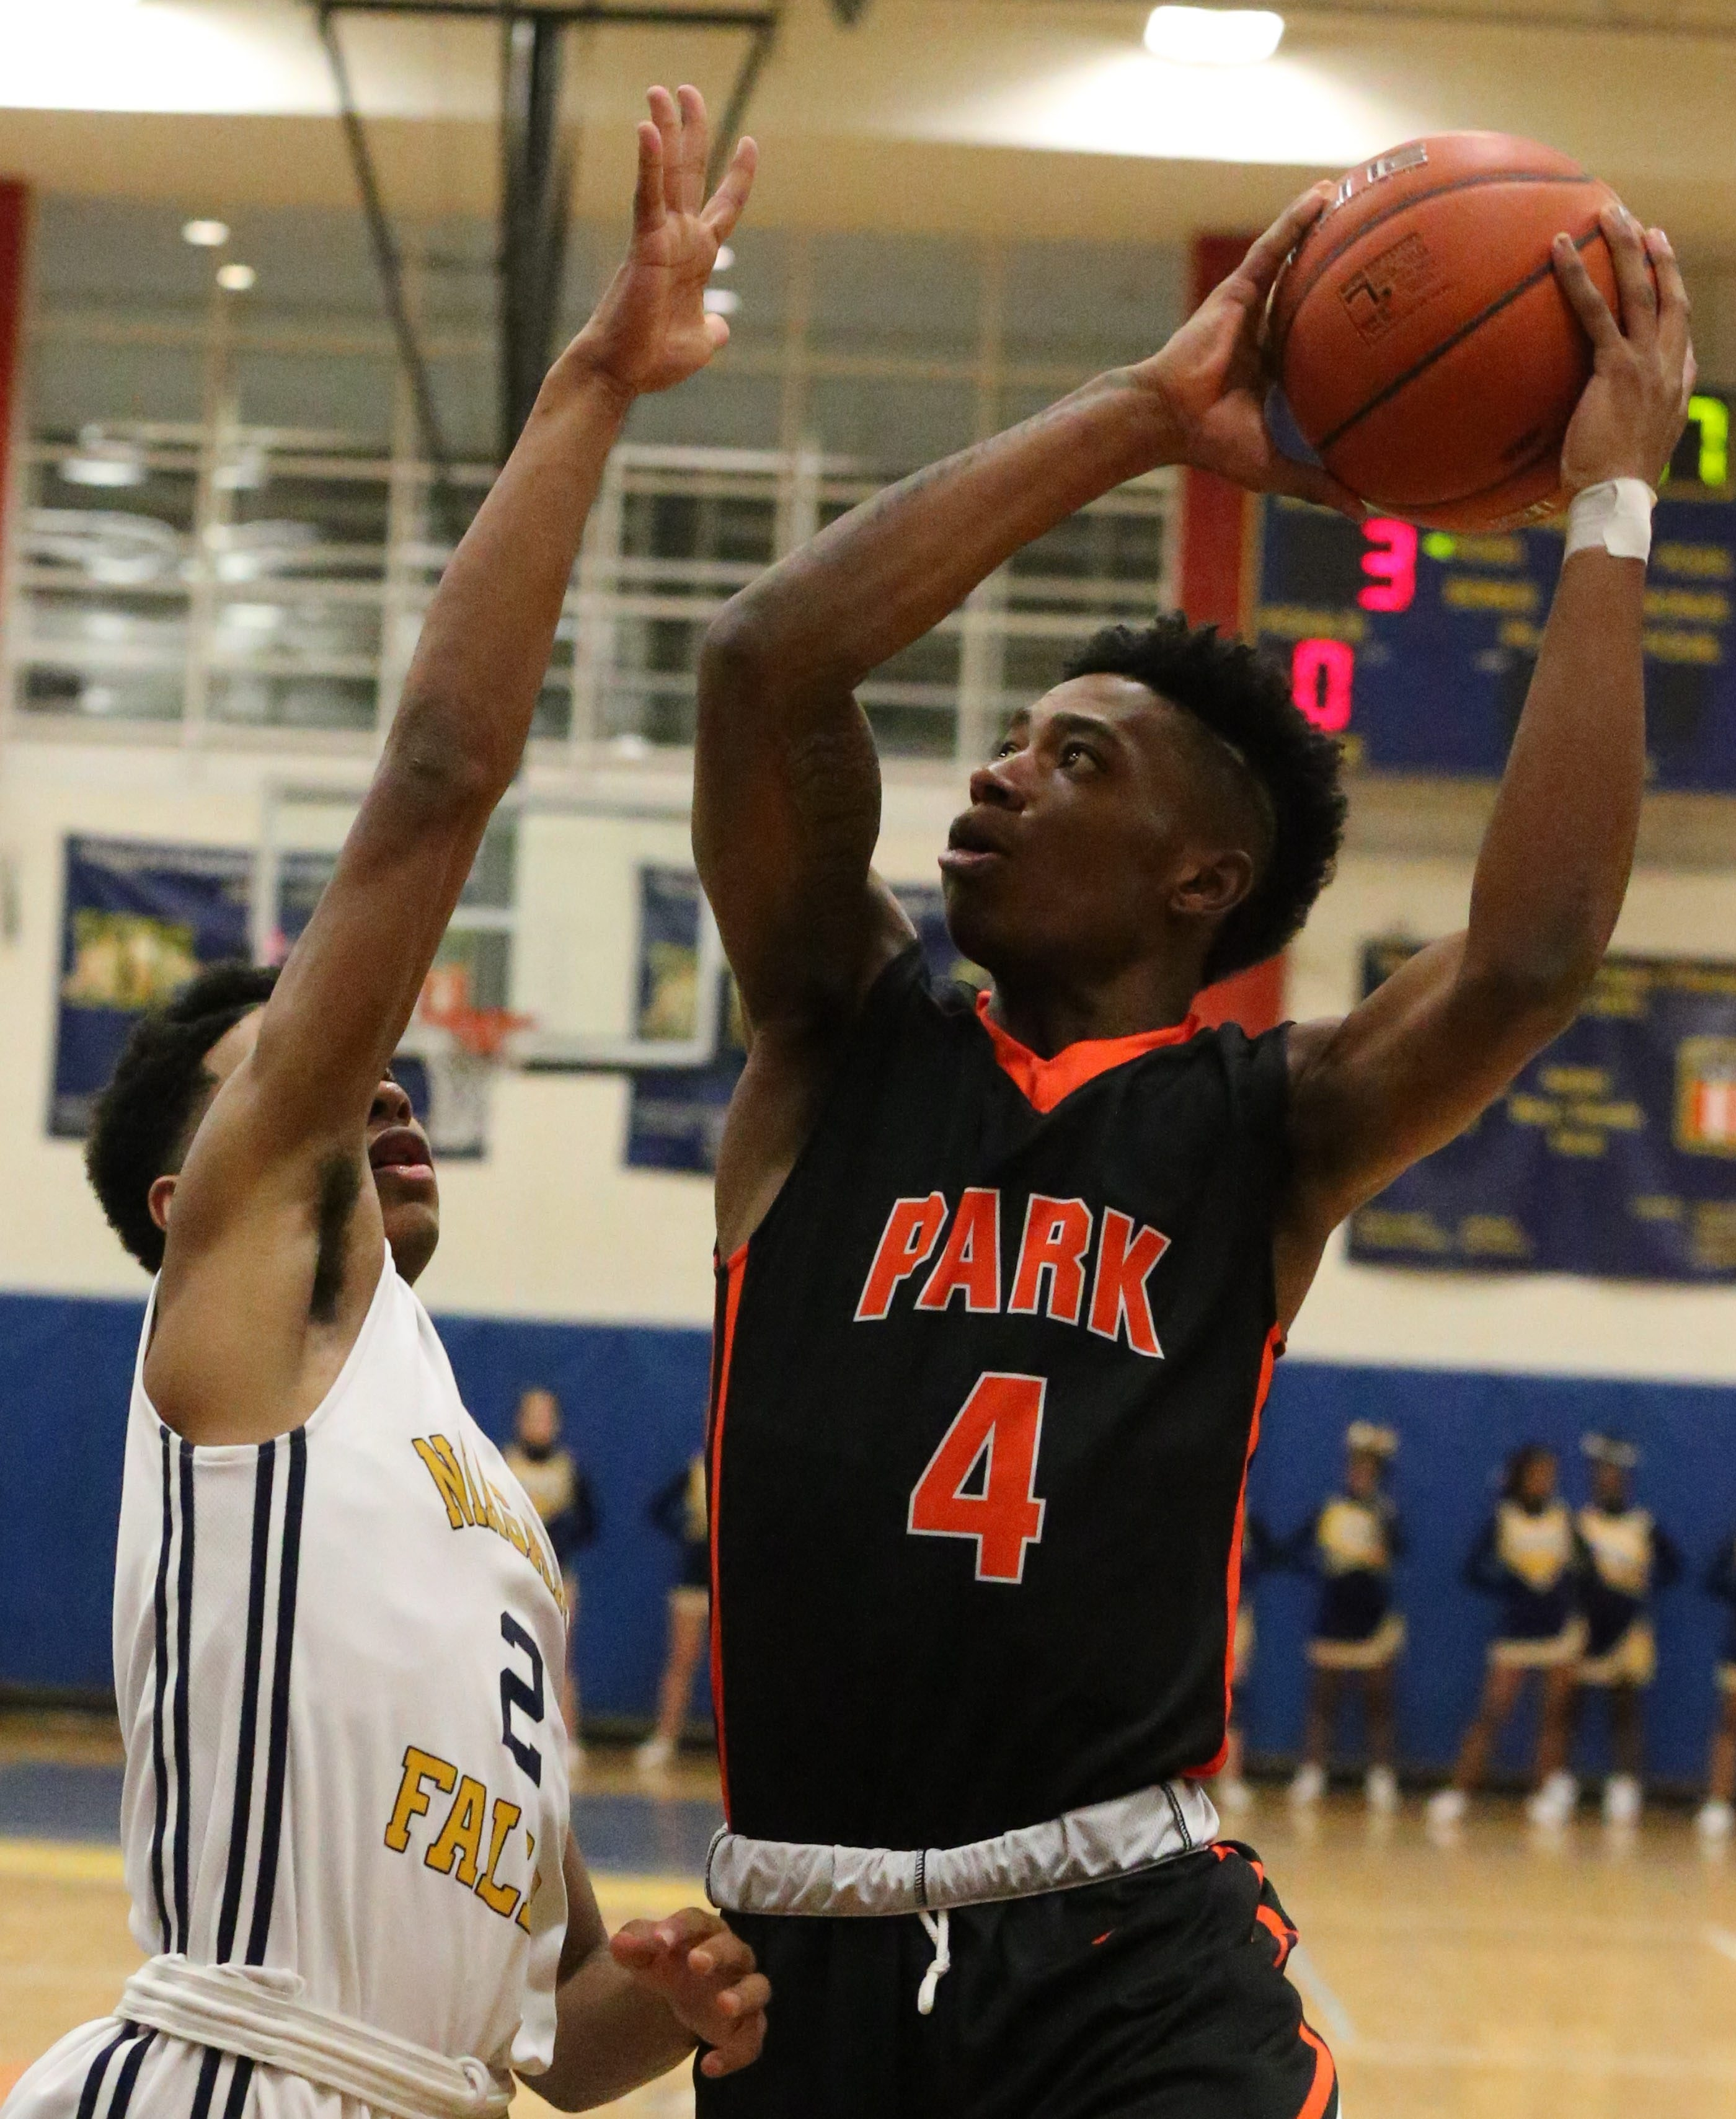 Park School's Kyle Harris scores two points during its win over Niagara Falls Saturday in the Cataract Classic.   High School player Qeyion Williams on Saturday.